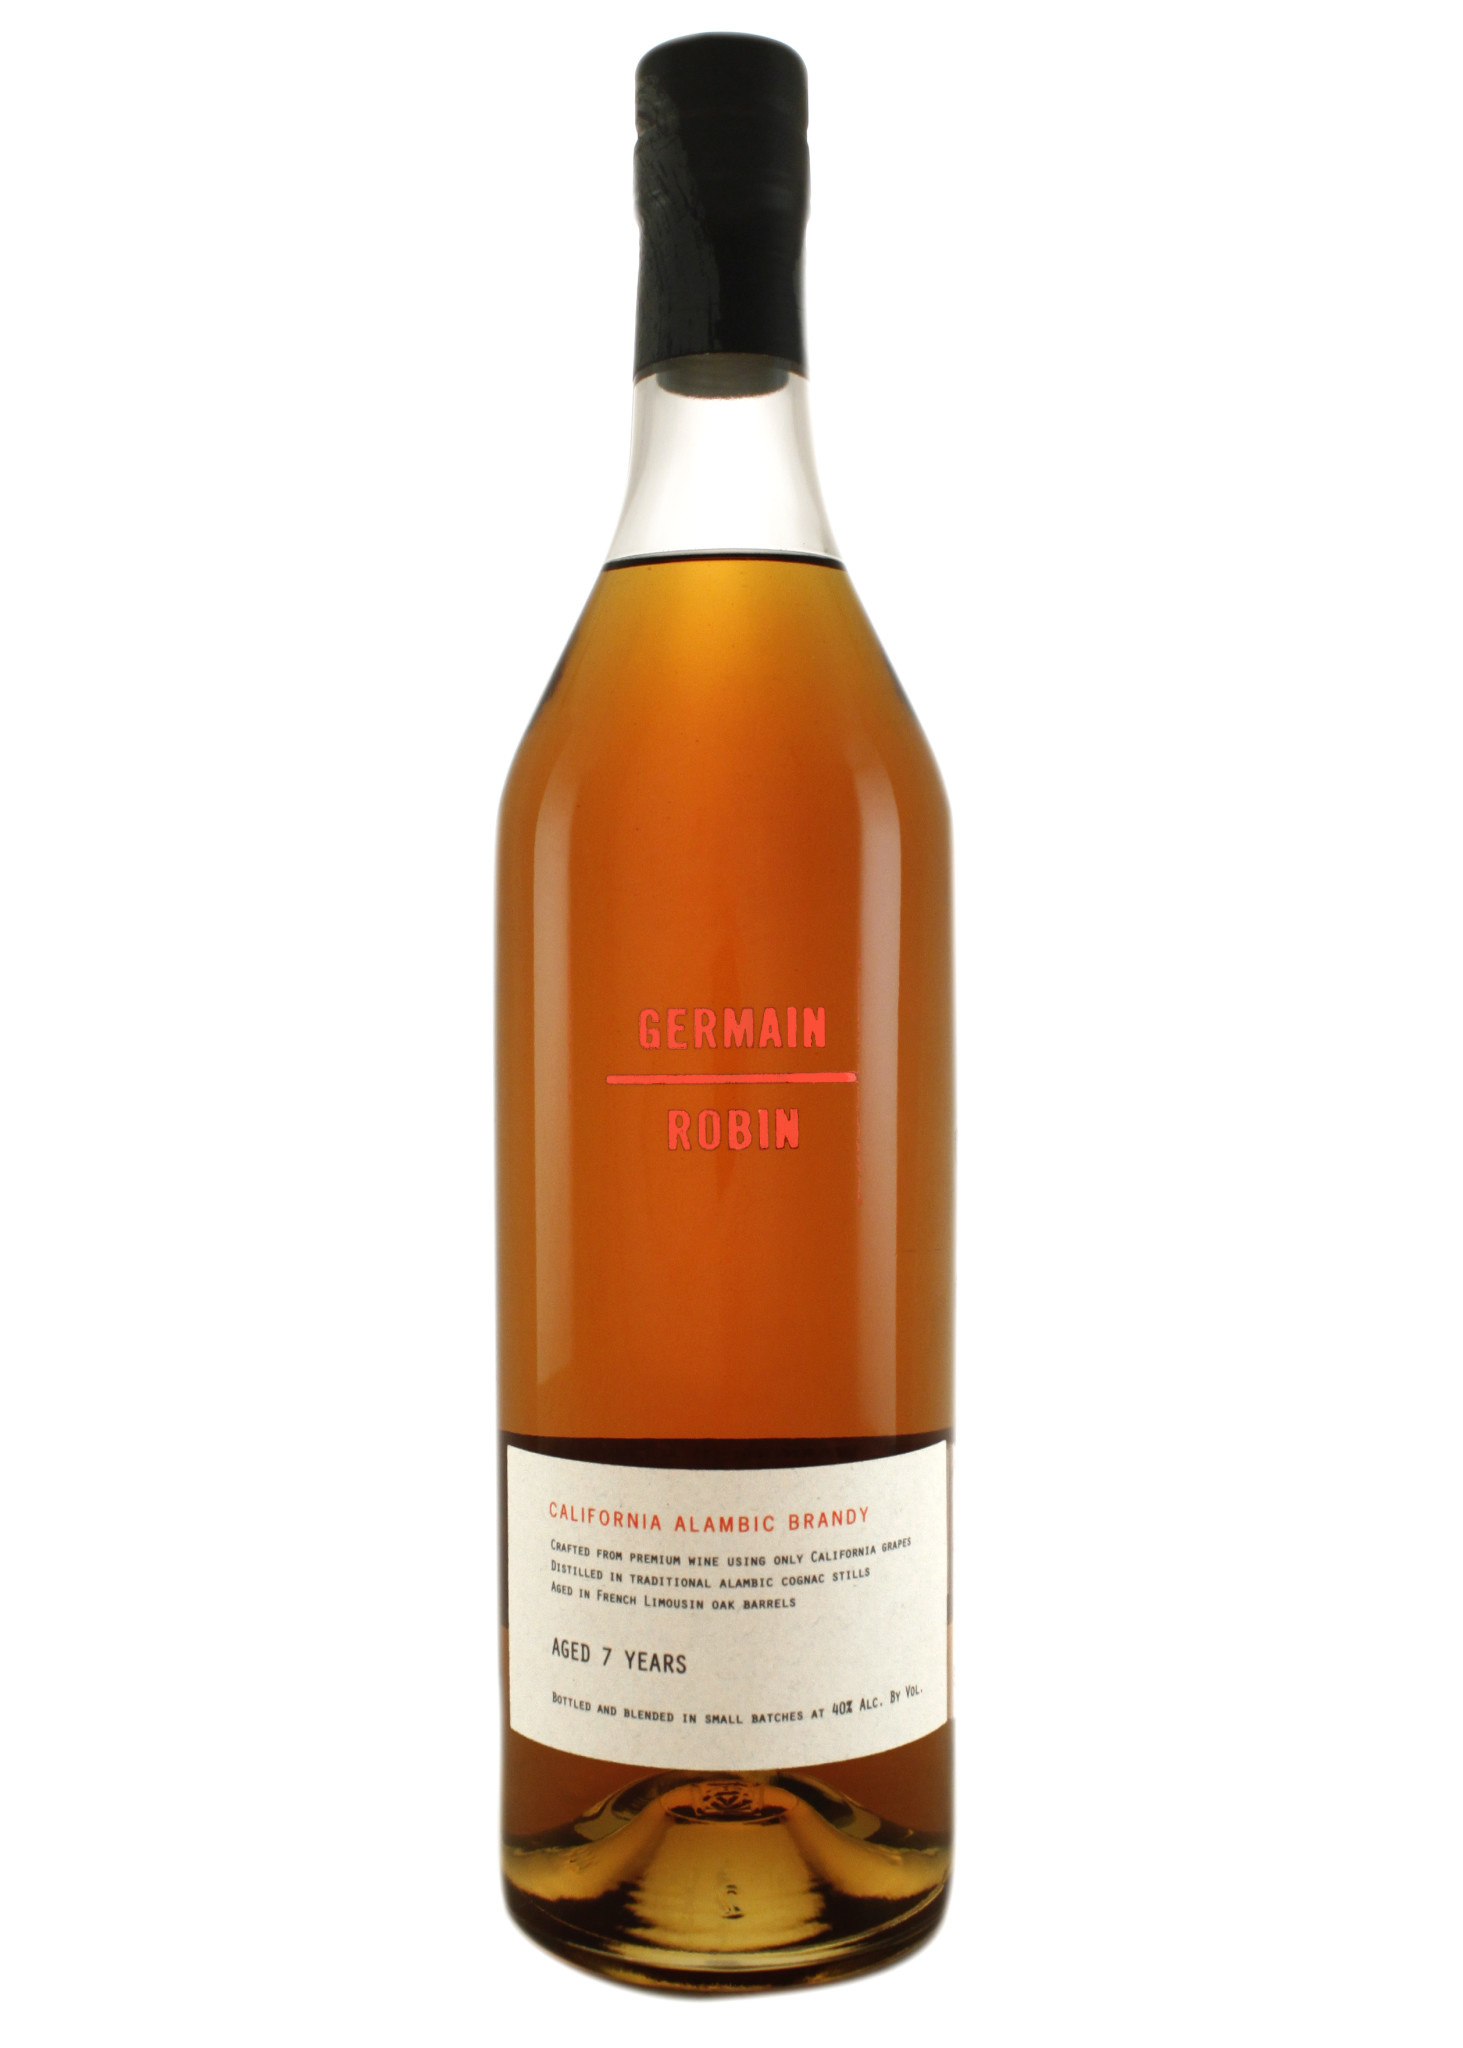 Germain-Robin Flagship Alambic Brandy, Aged 7 Years, California